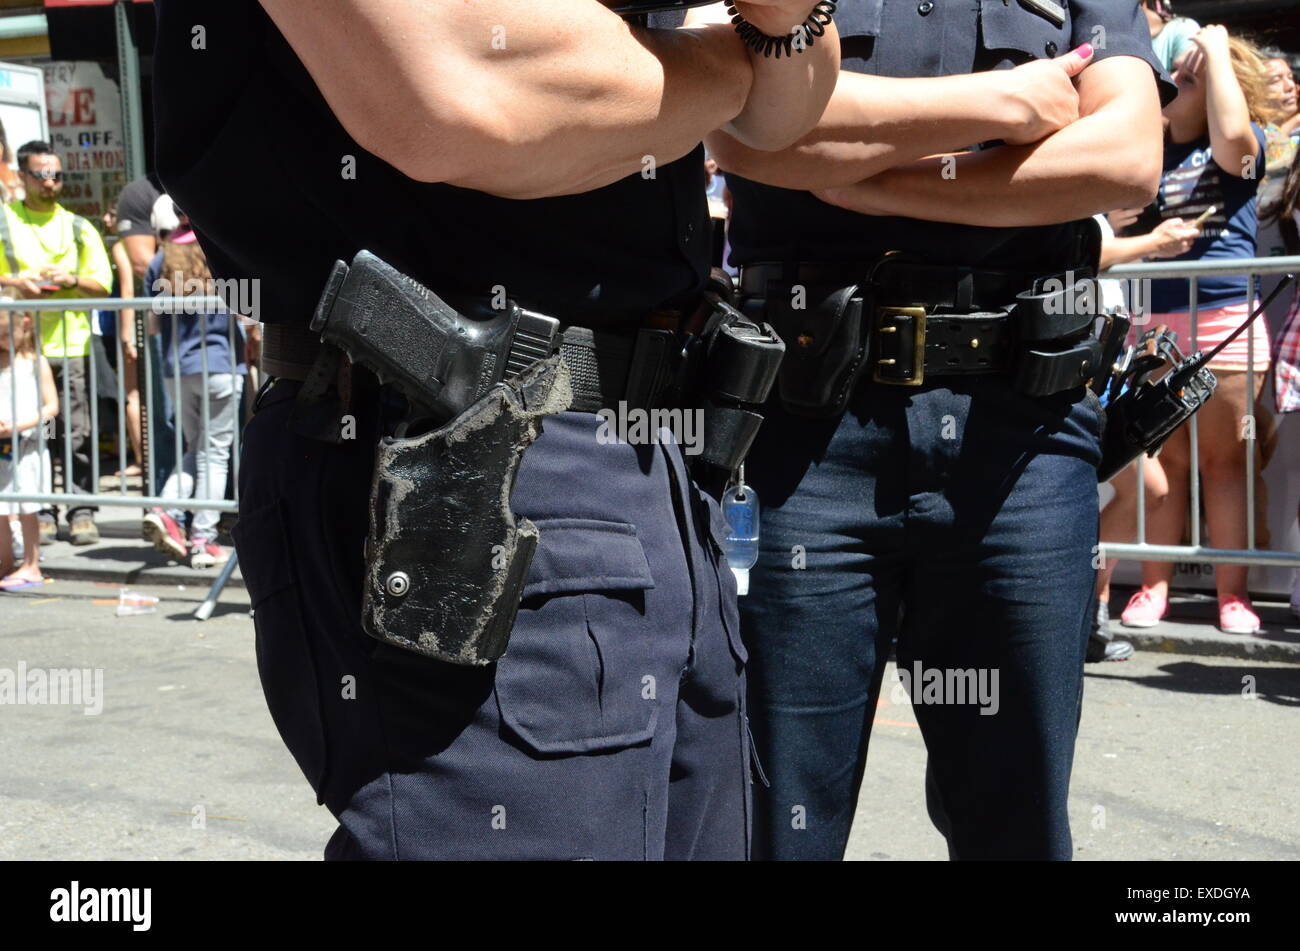 Pair of NYPD police officers with gun belts - Stock Image